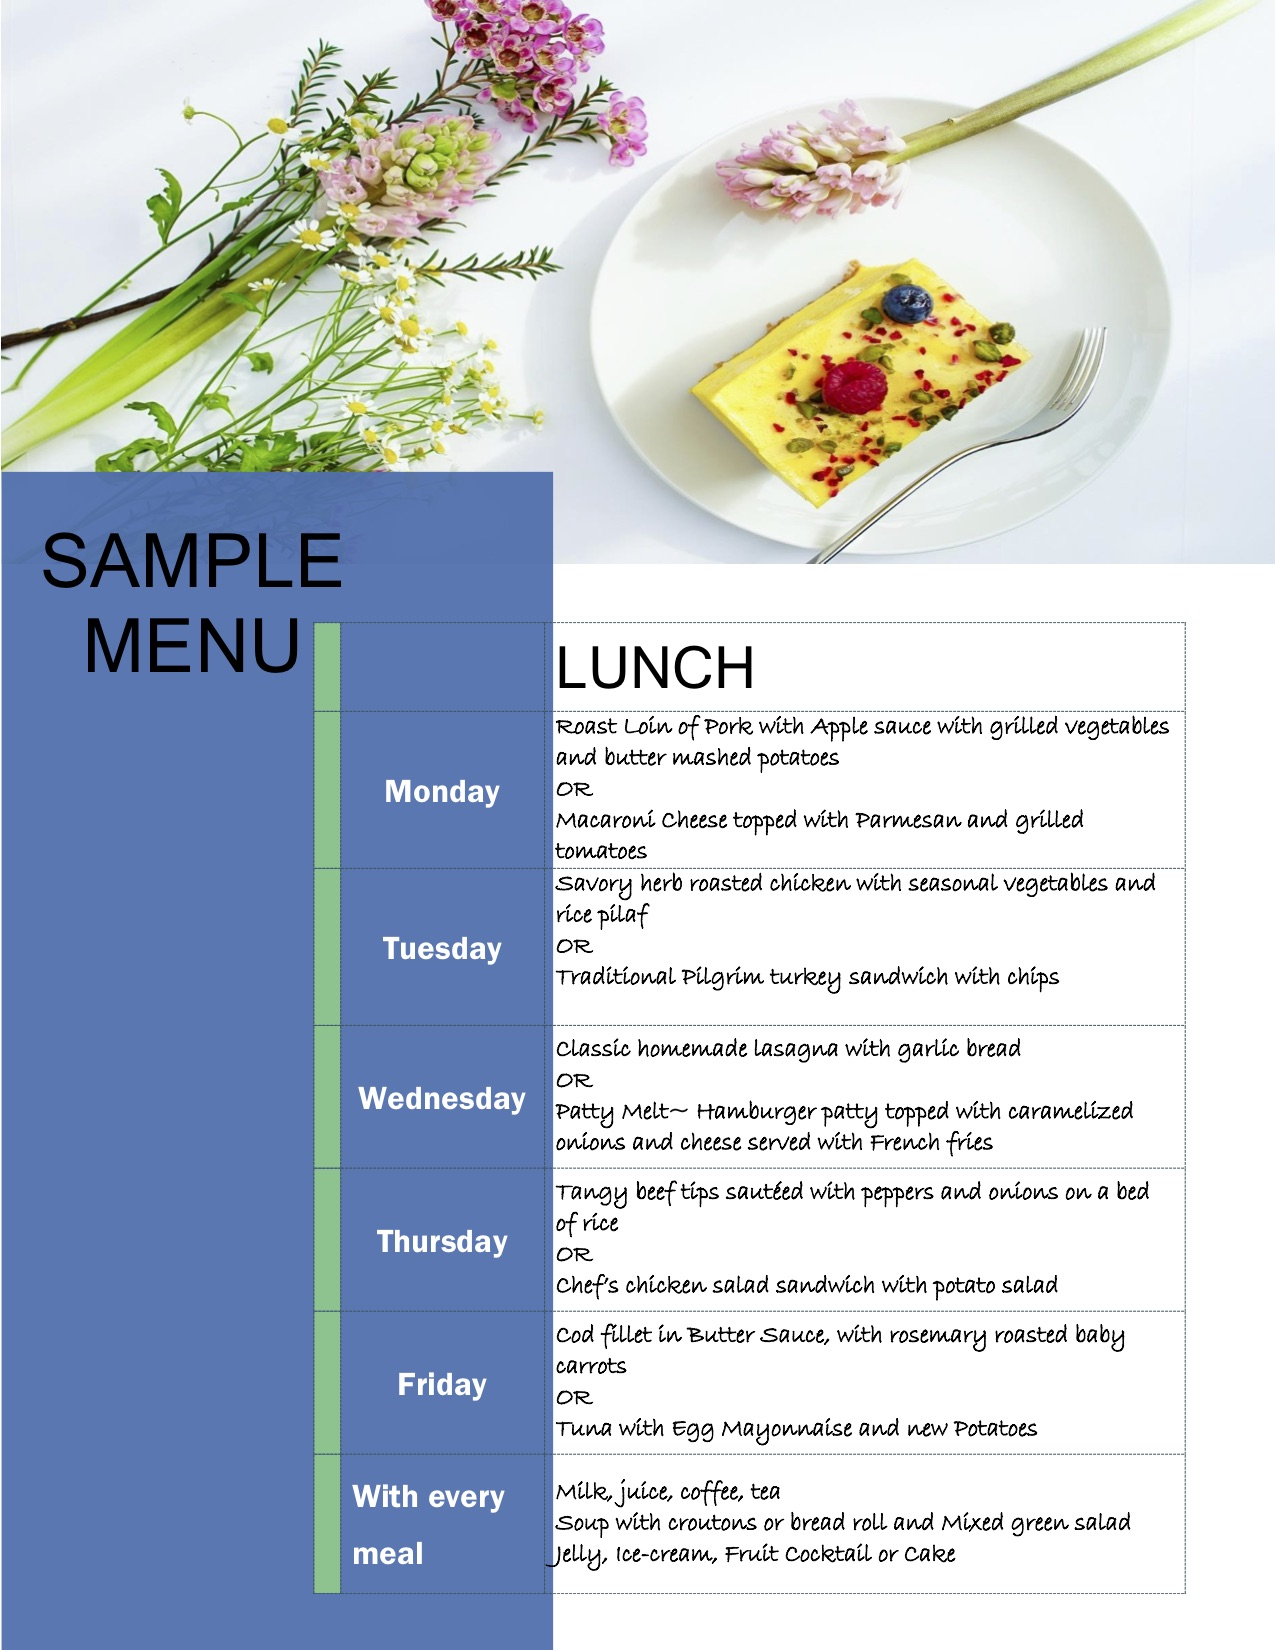 Sample Menu for website.jpg